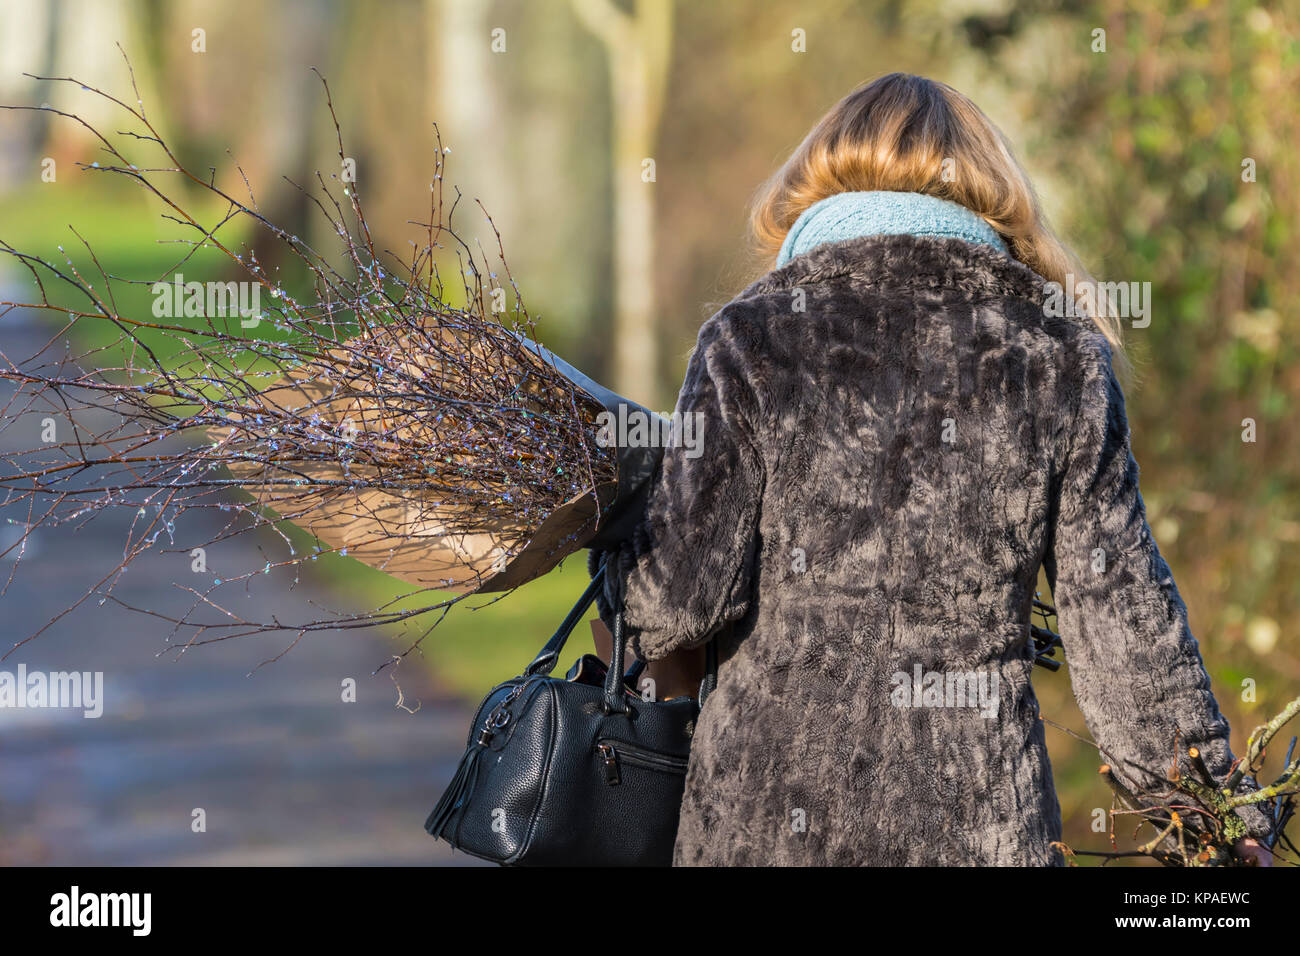 A woman walking in Winter carrying a bunch of twigs. - Stock Image